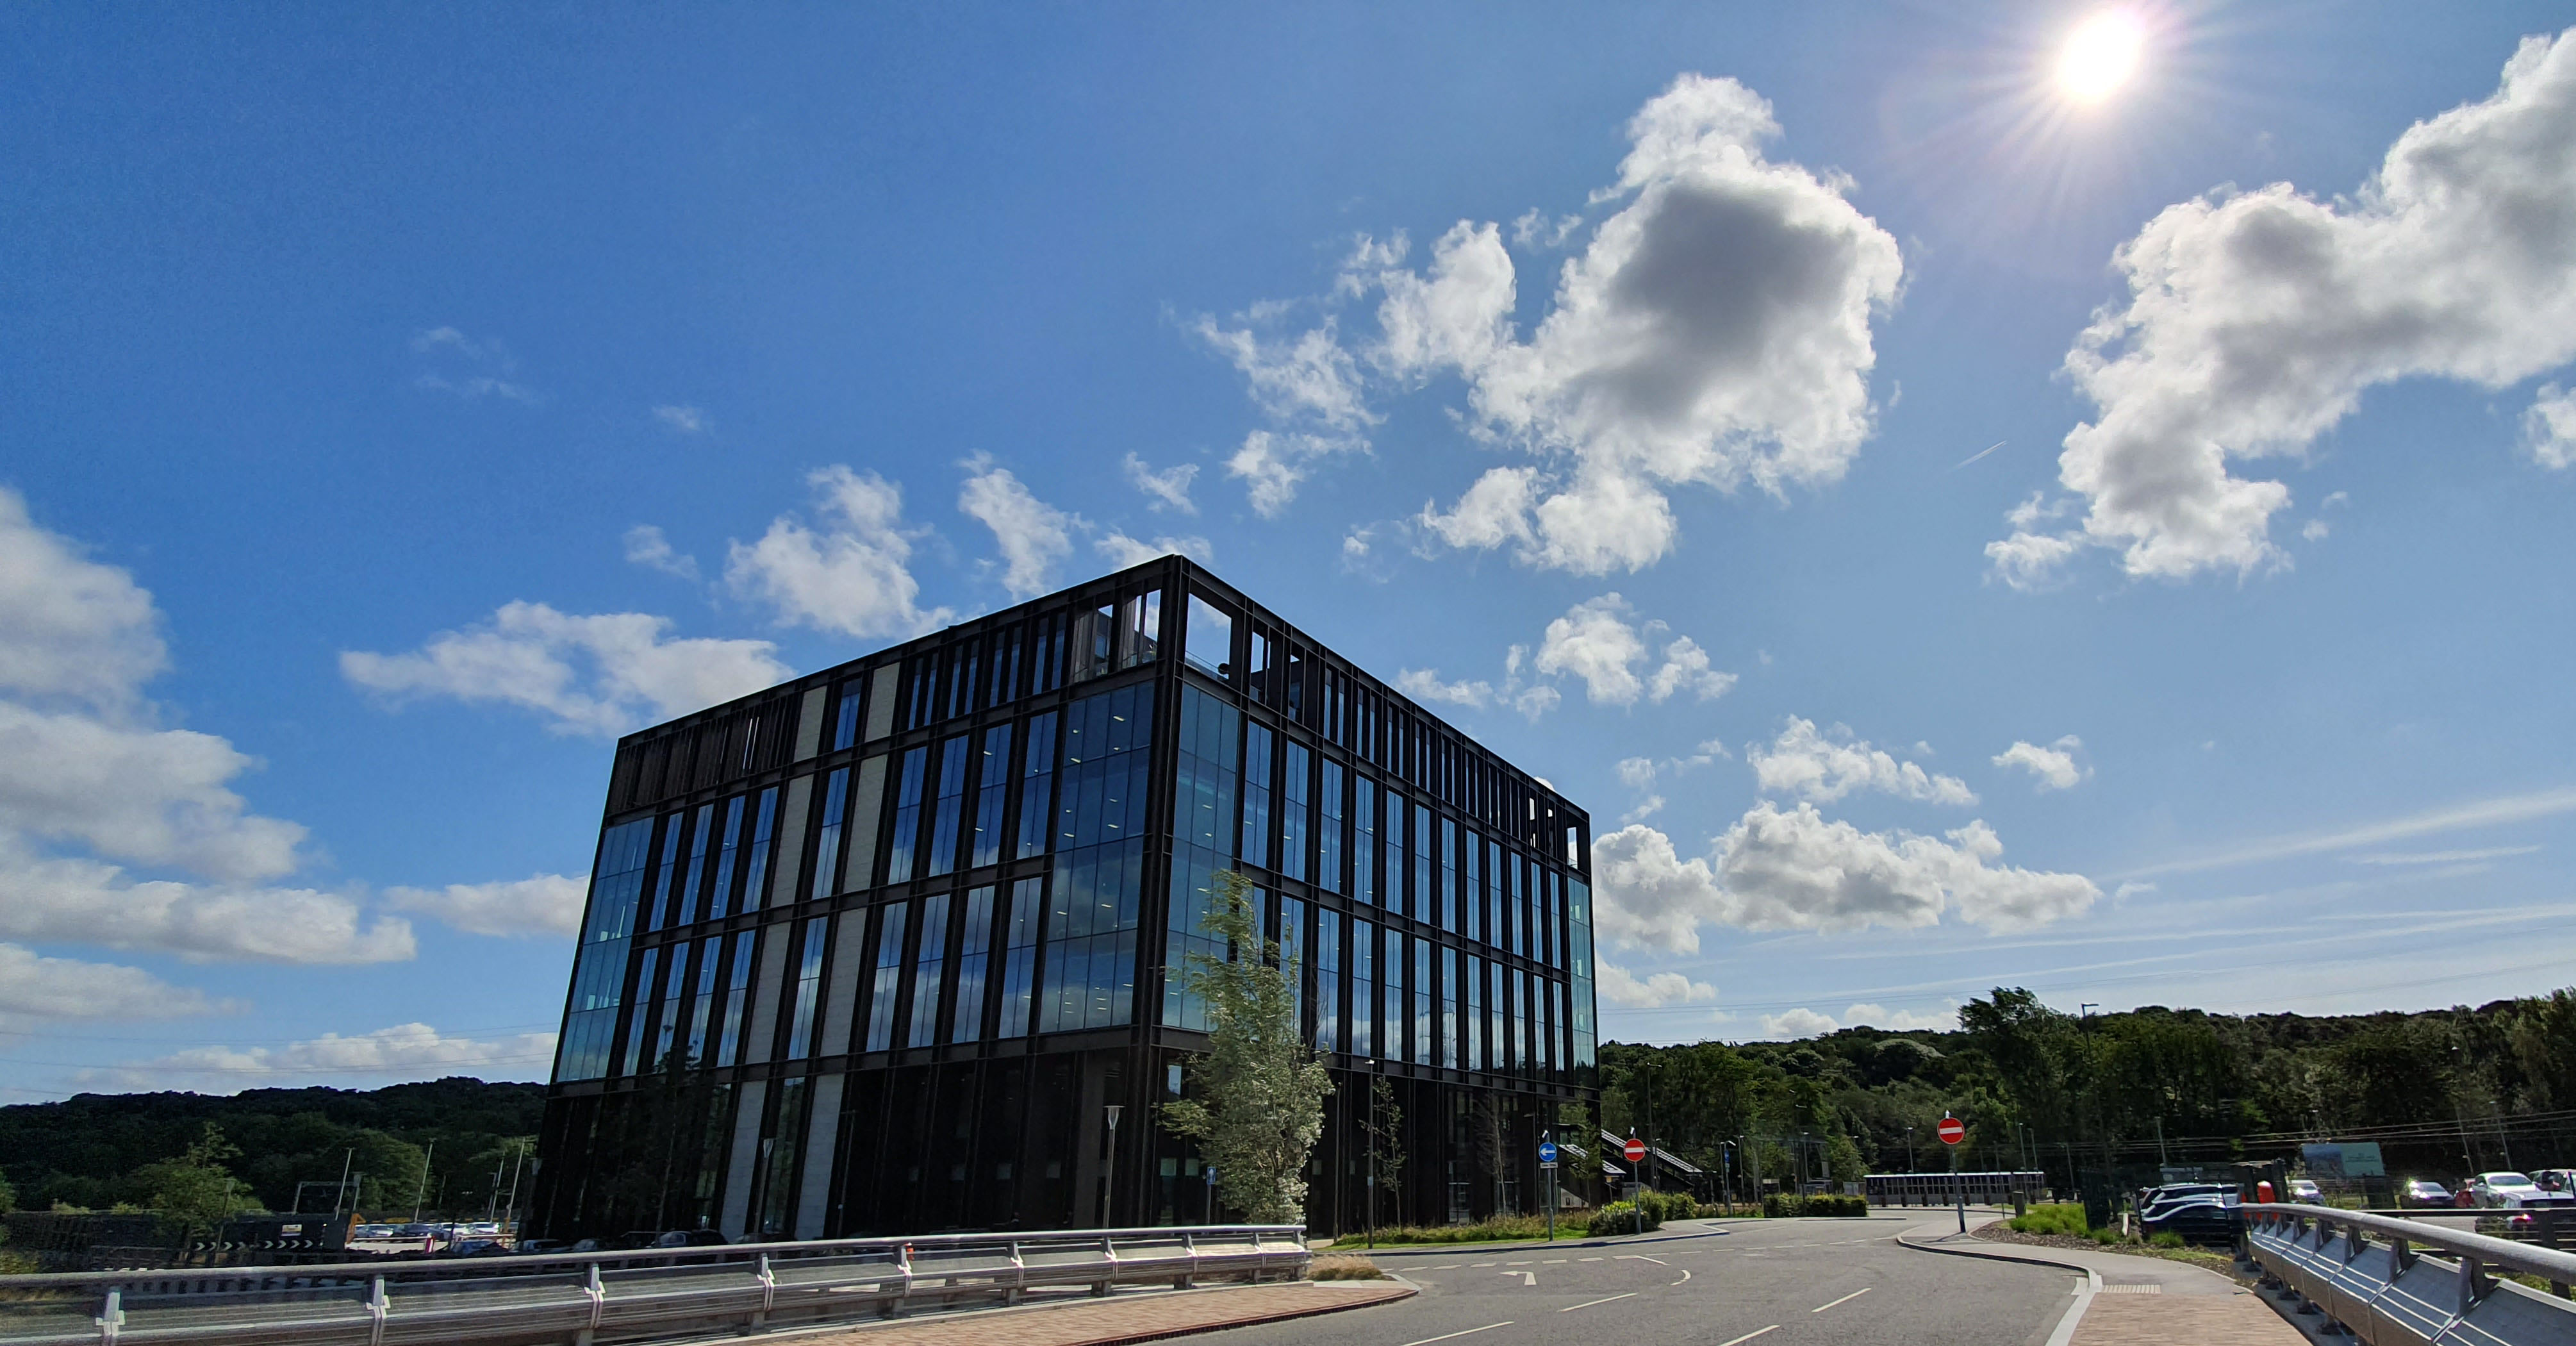 Picture of a modern office building against a blue sky